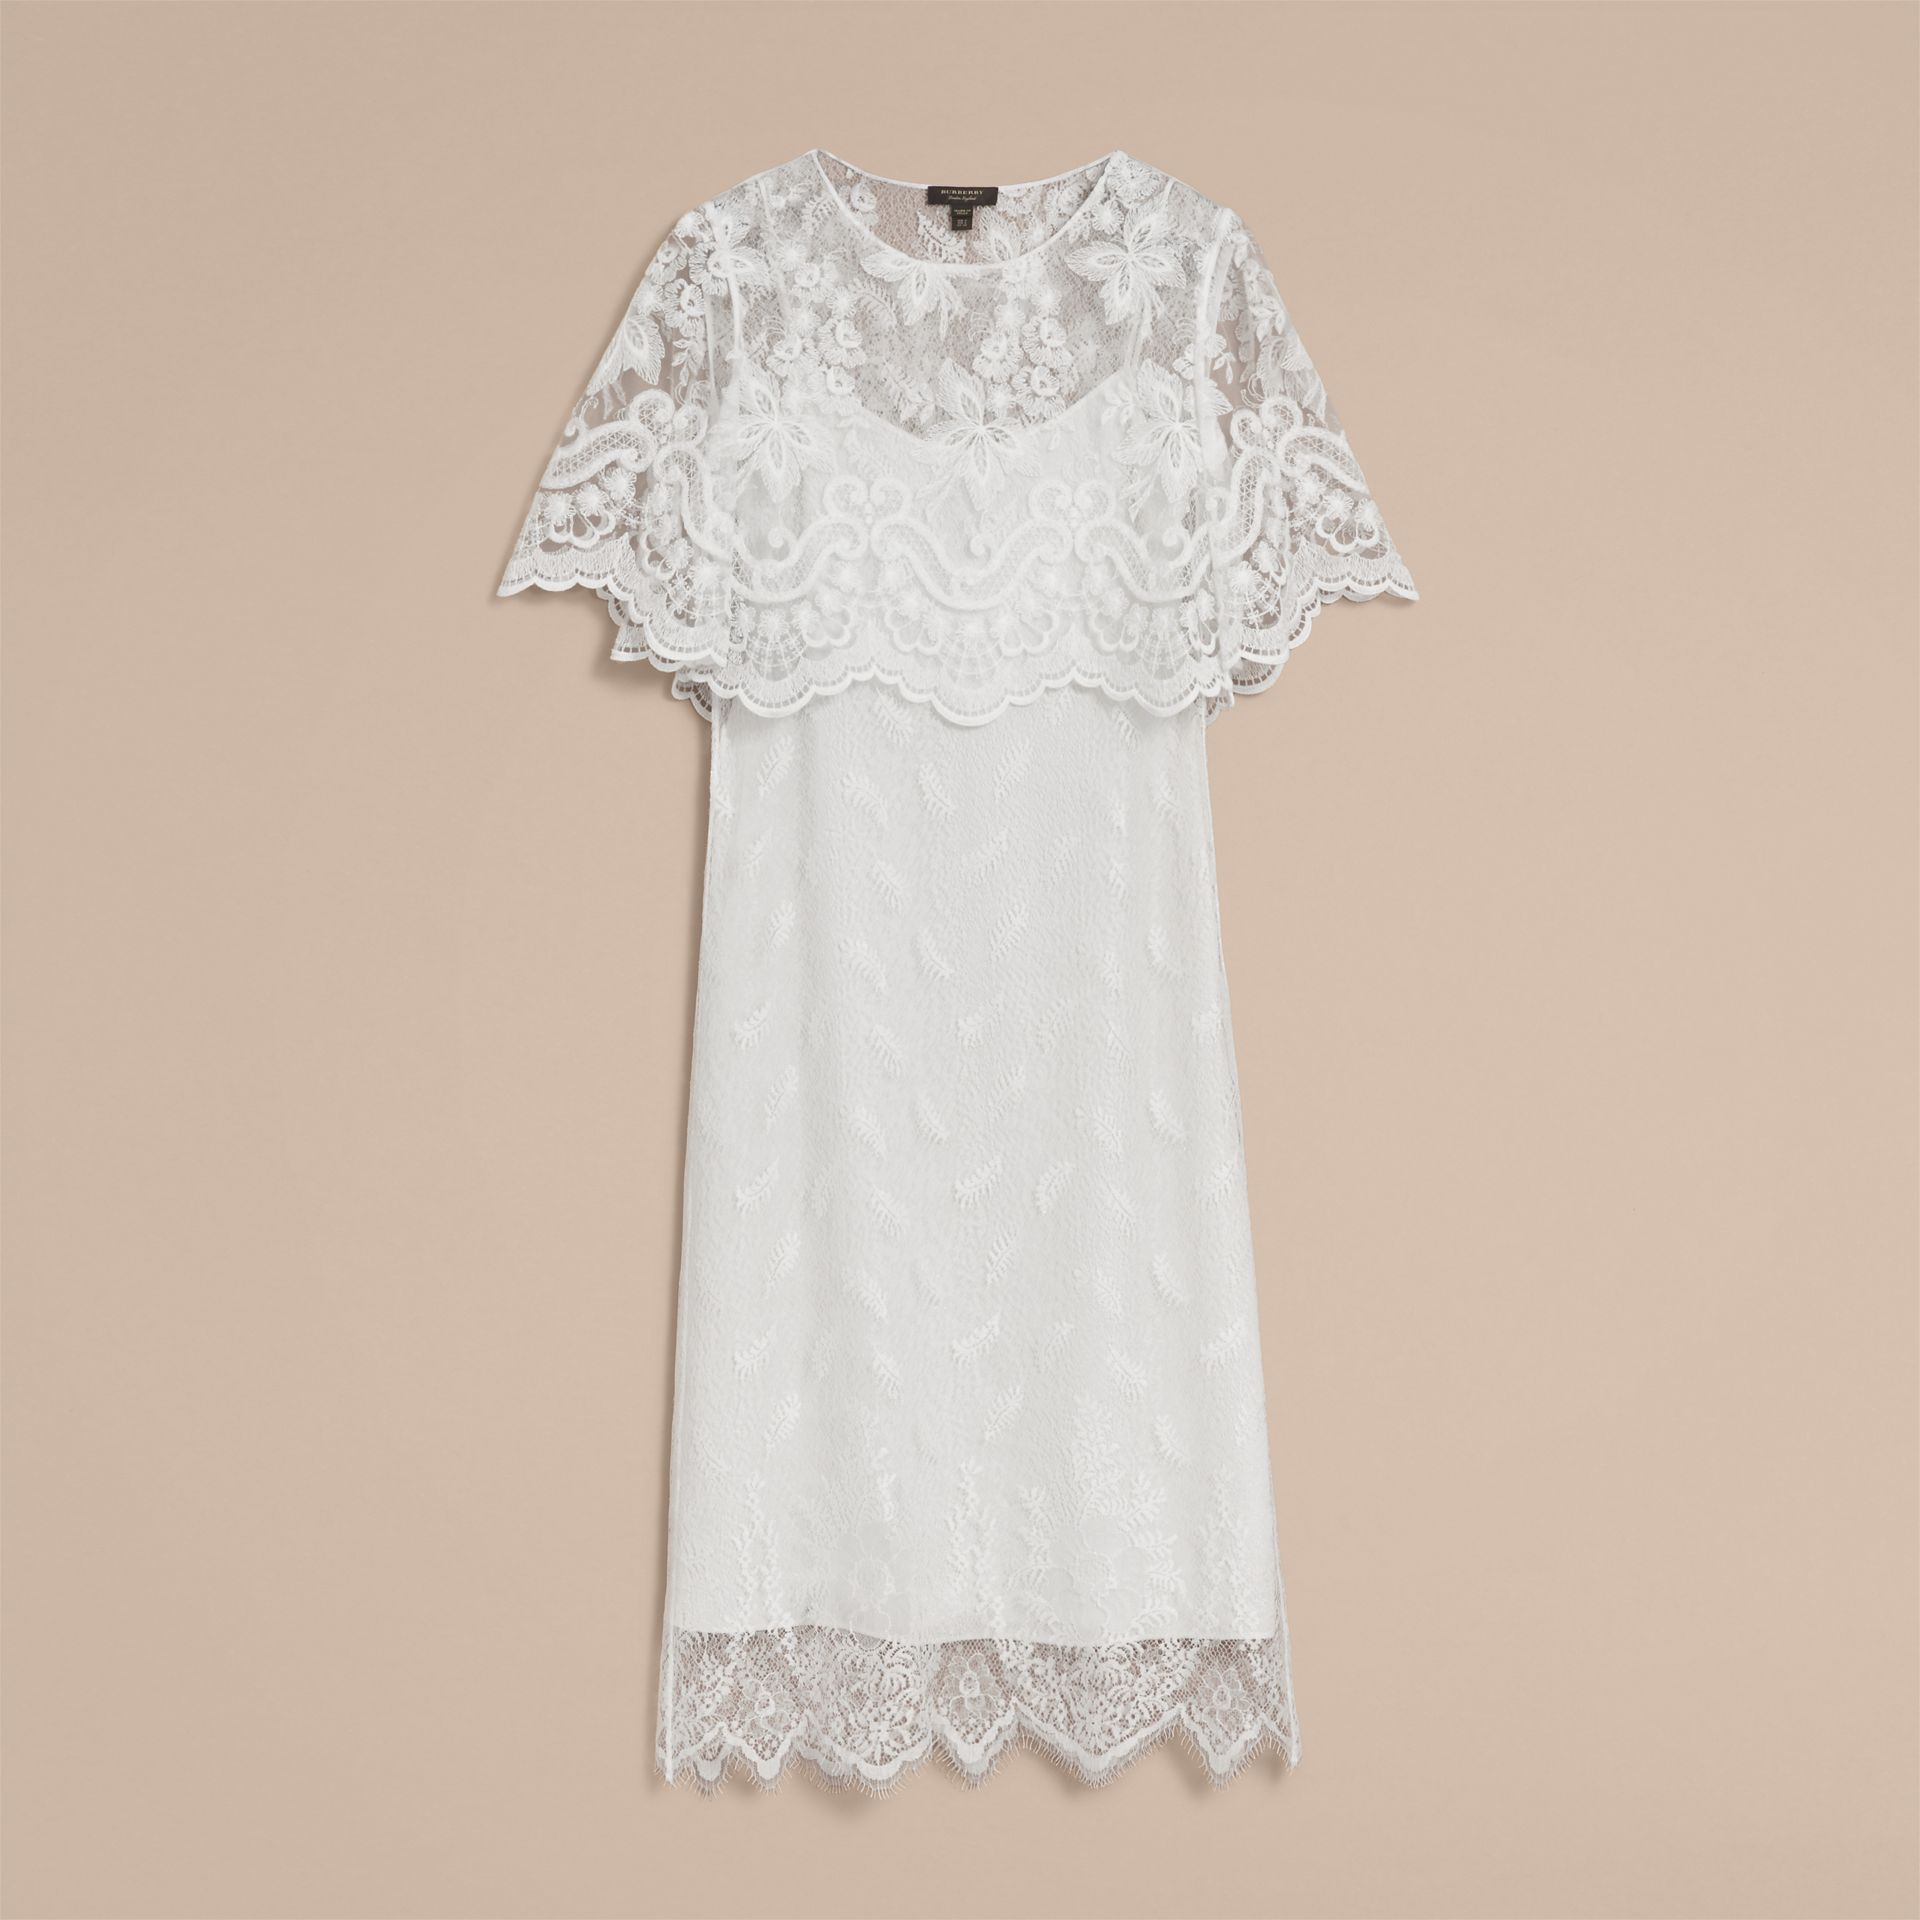 Layered Lace Shift Dress in White - Women | Burberry - gallery image 4